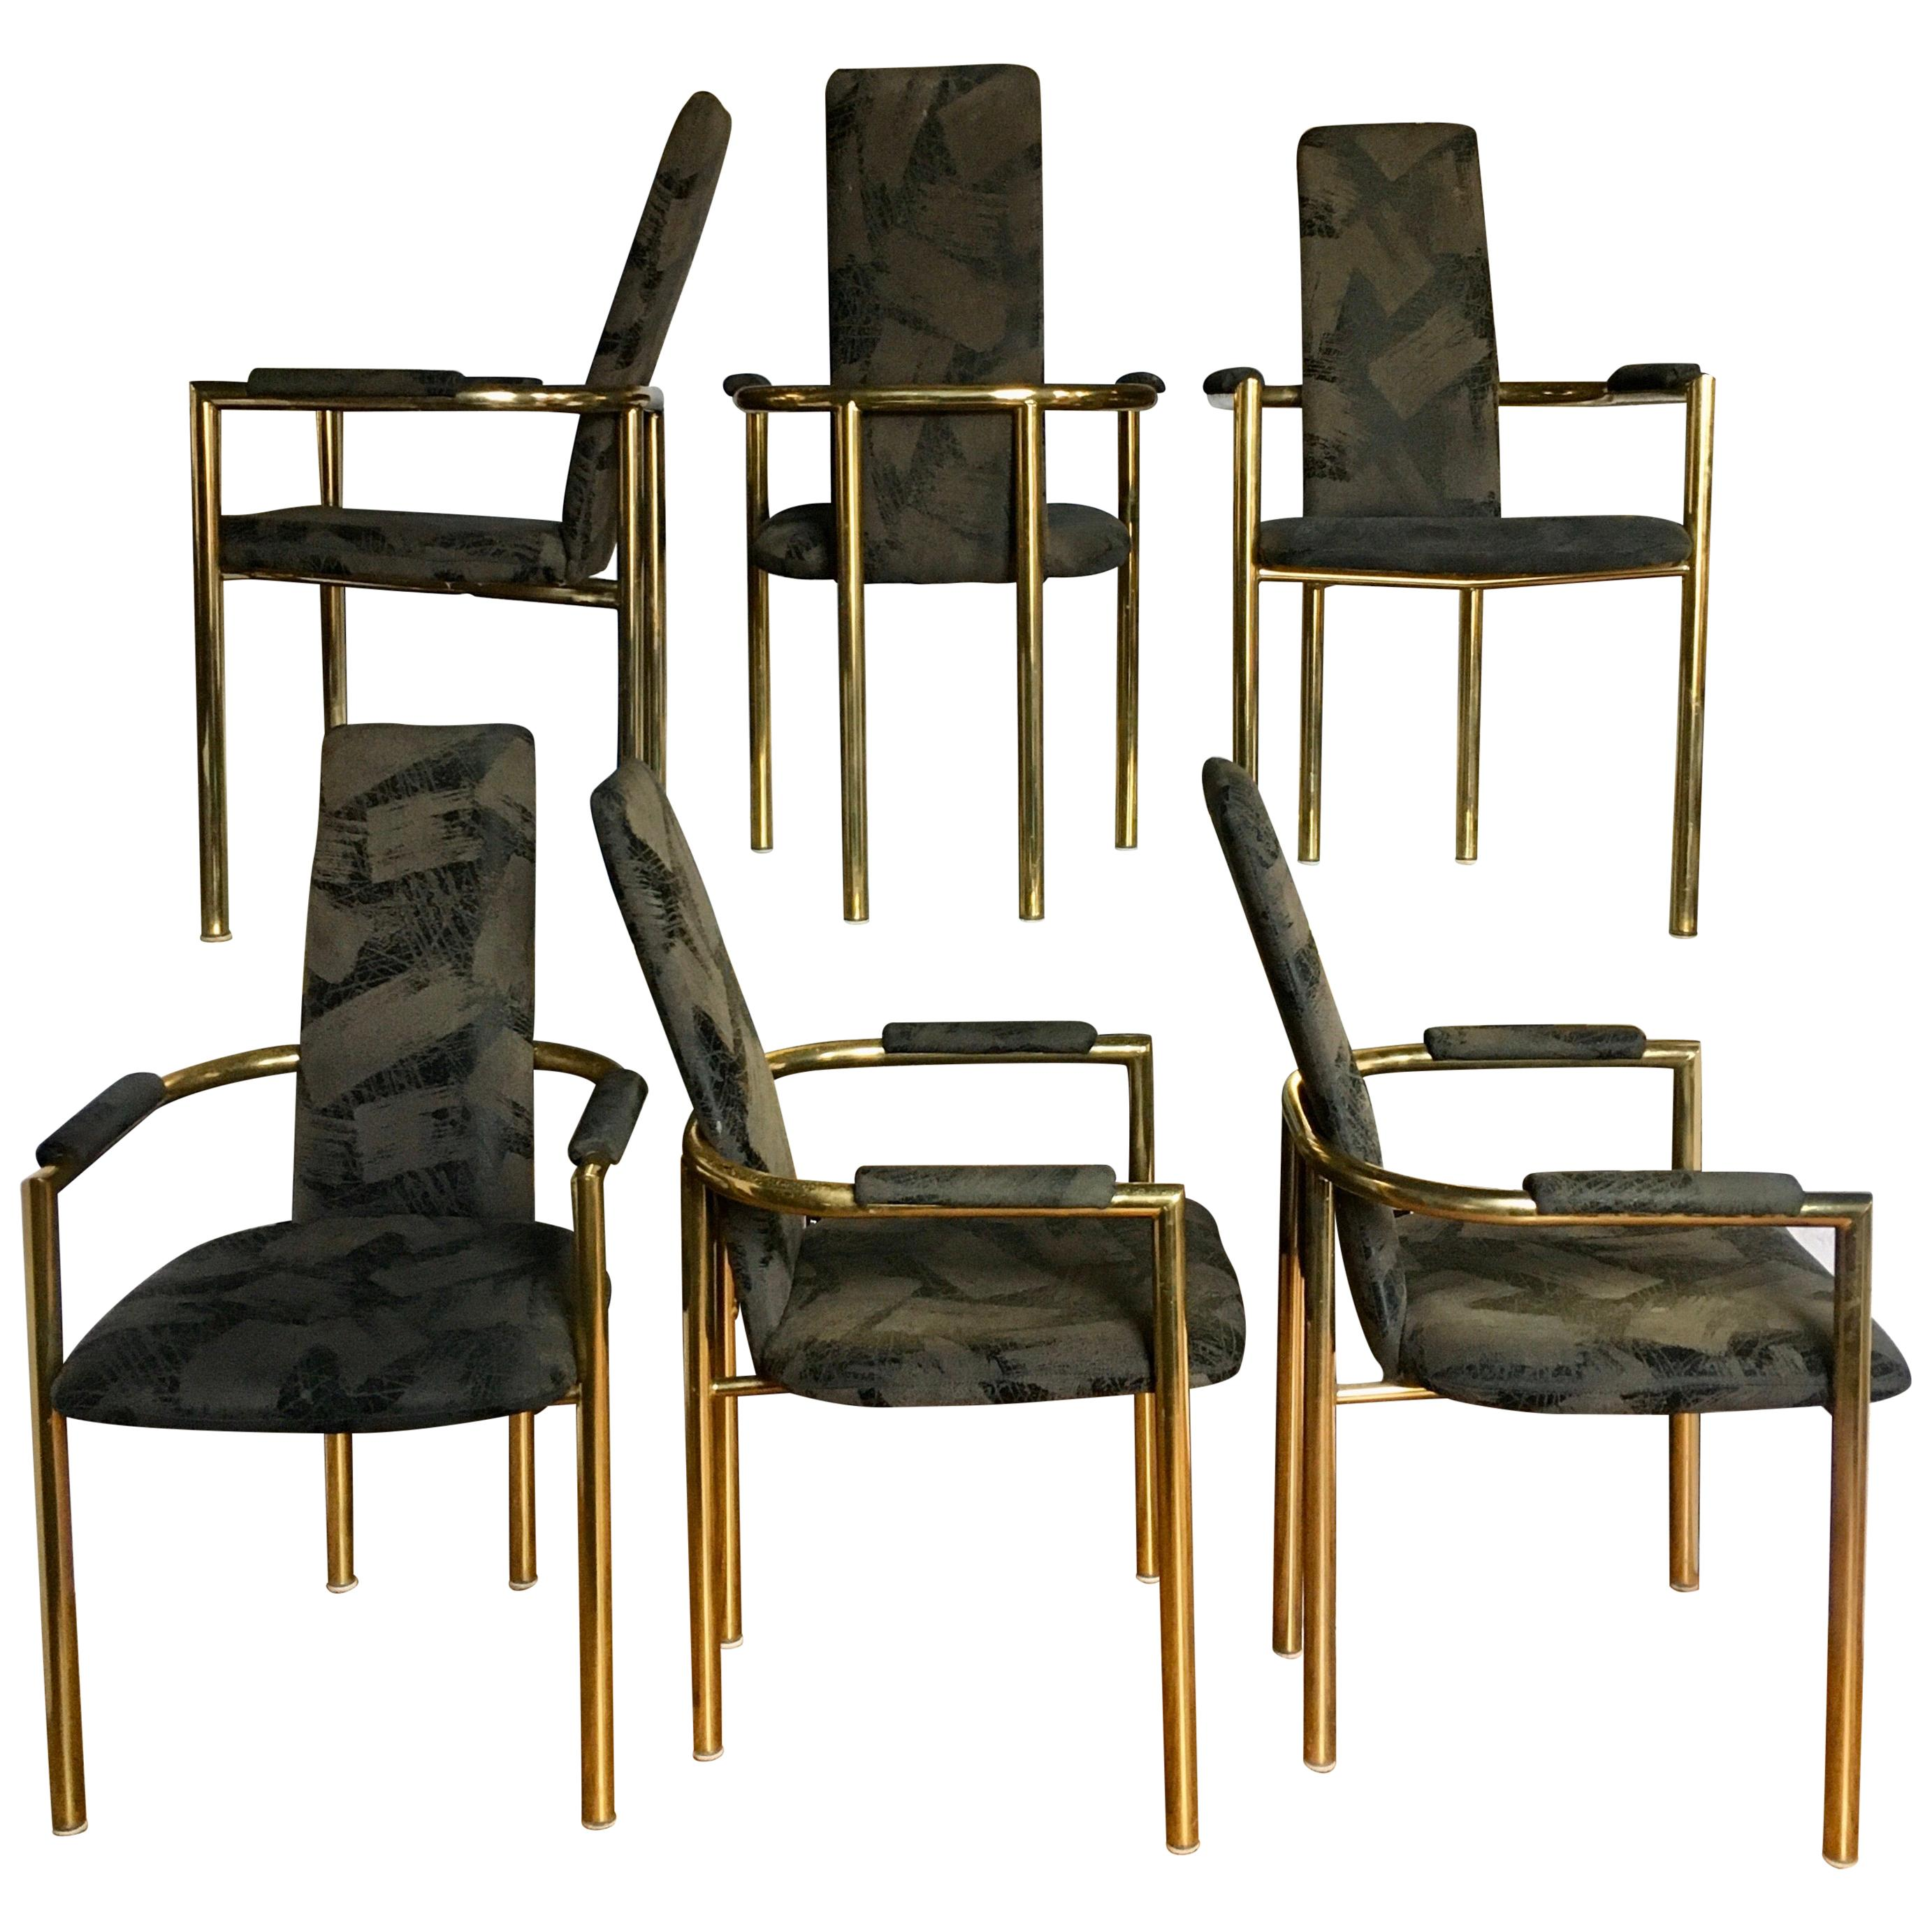 Milo Baughman Style Modern Tubular Brass Dining Chairs by Cal-Style, Set of 6